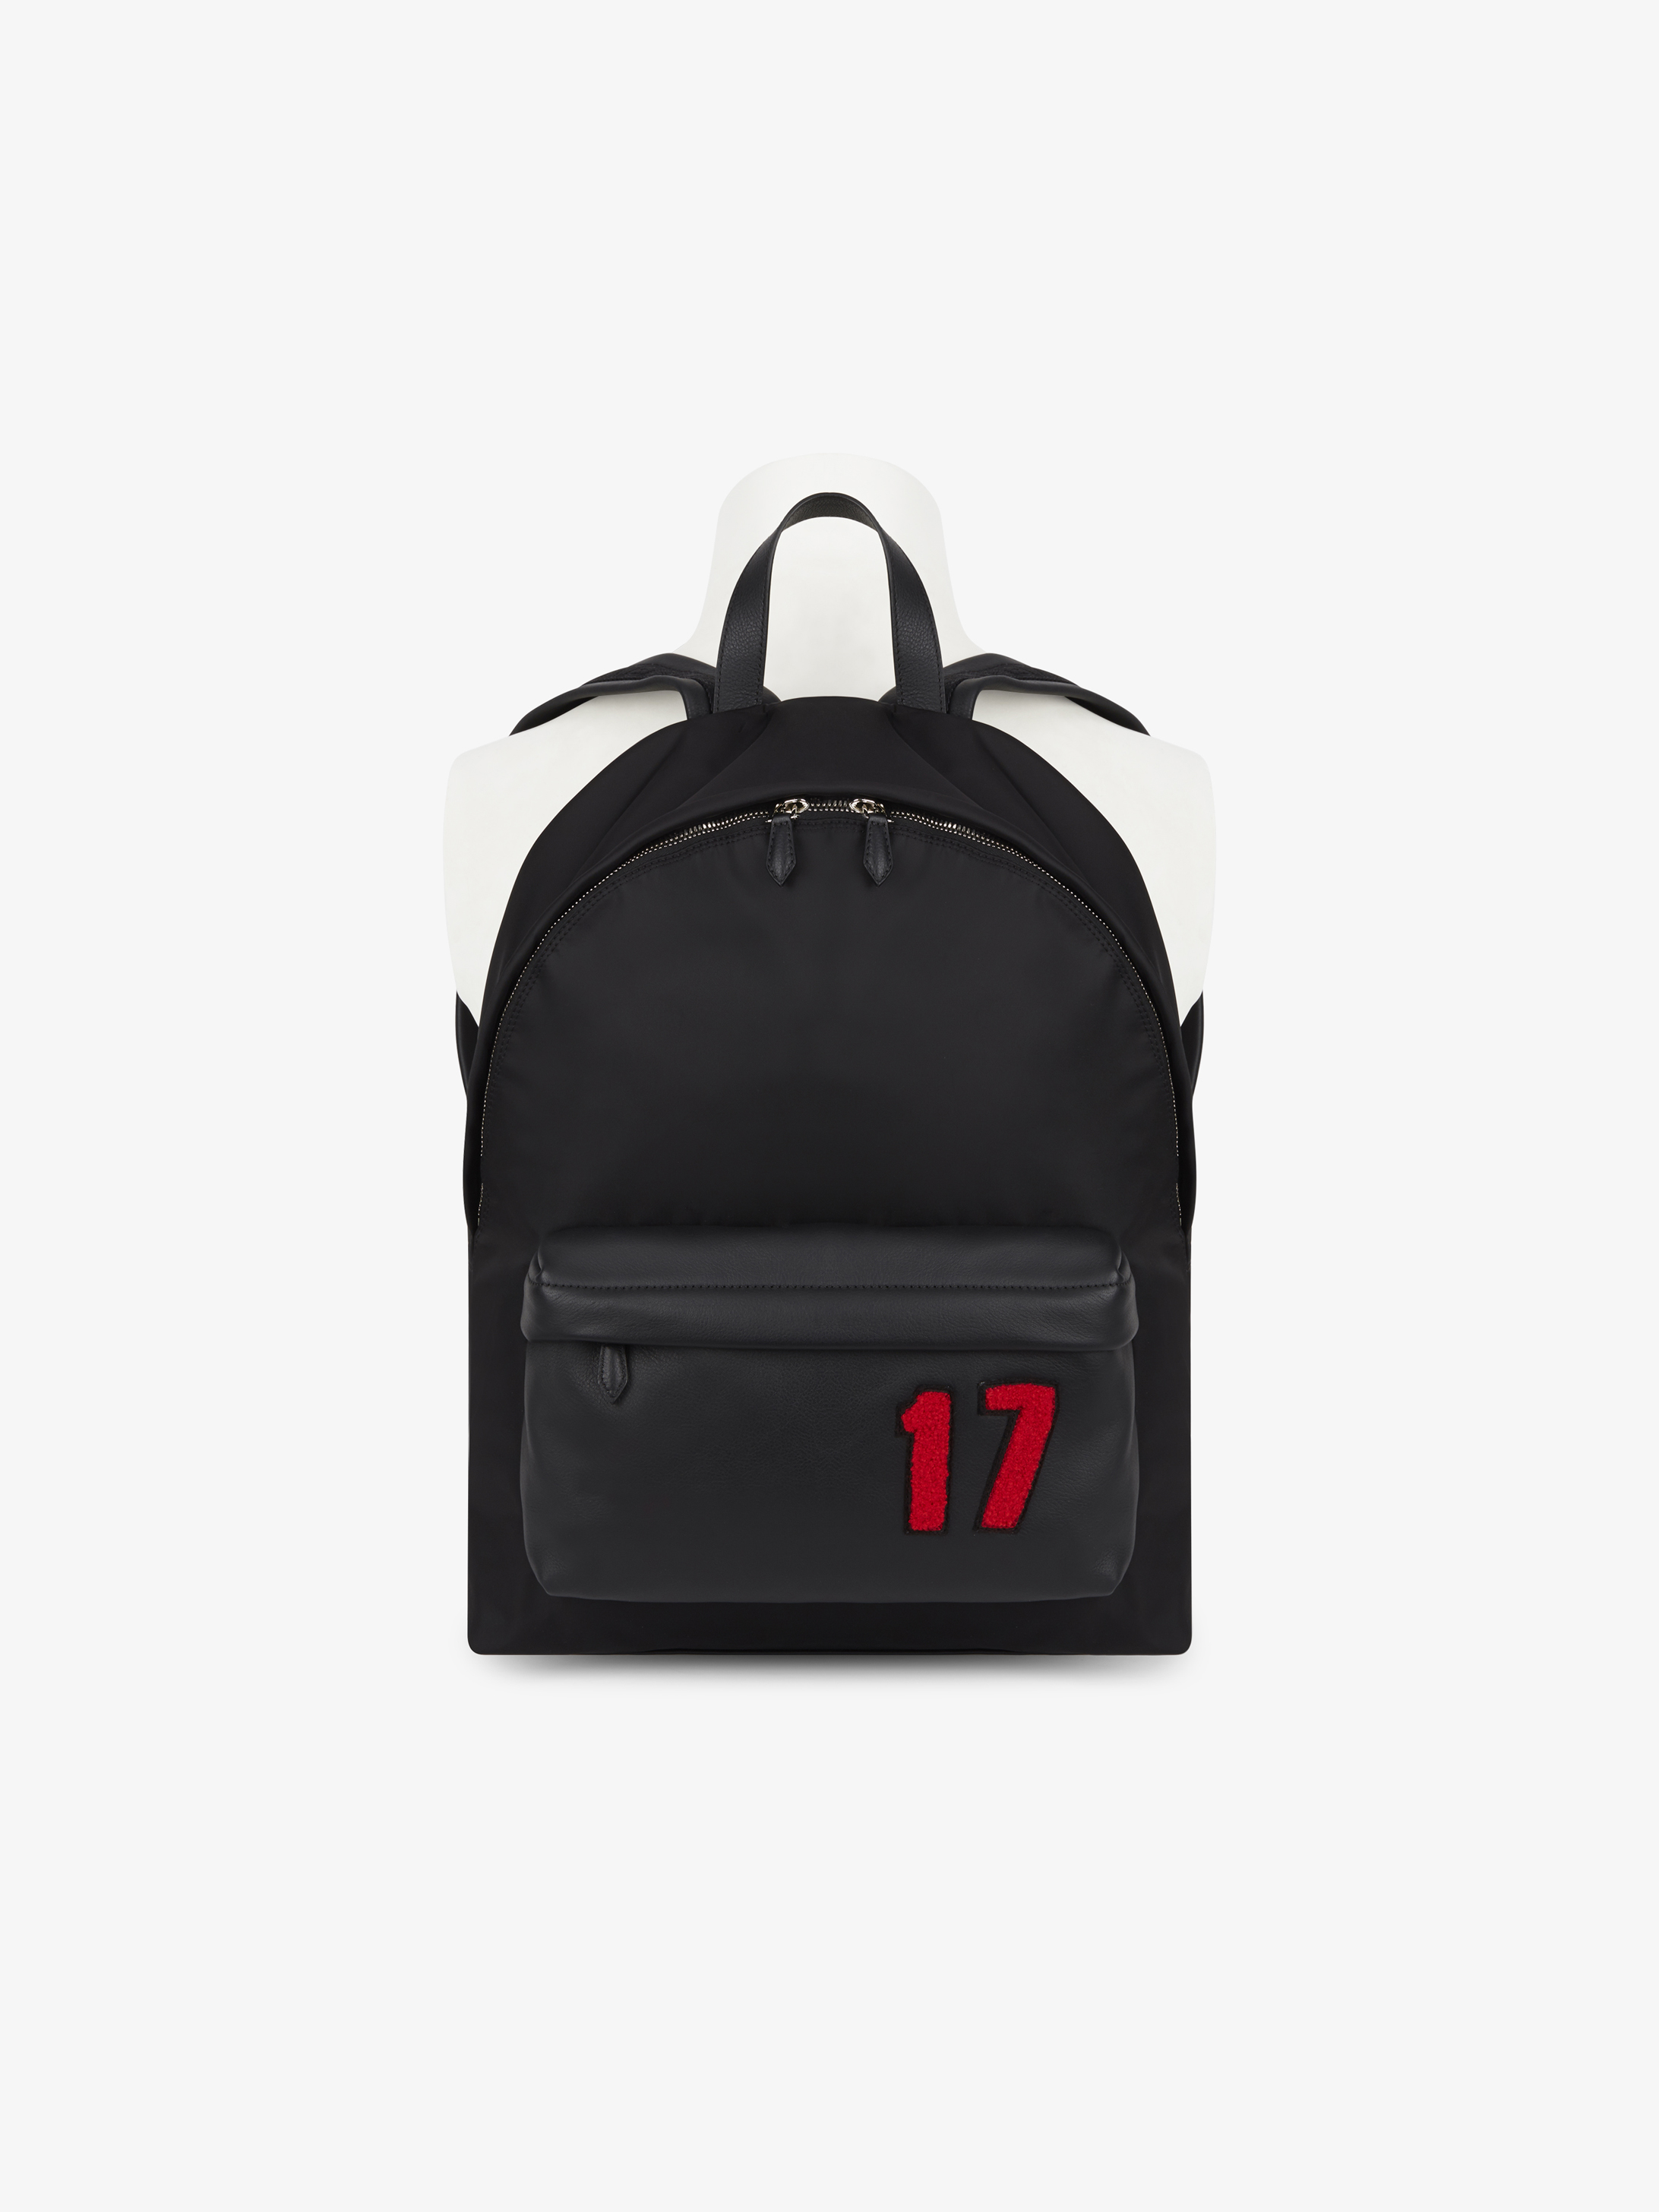 17 patch backpack in nylon with leather pocket